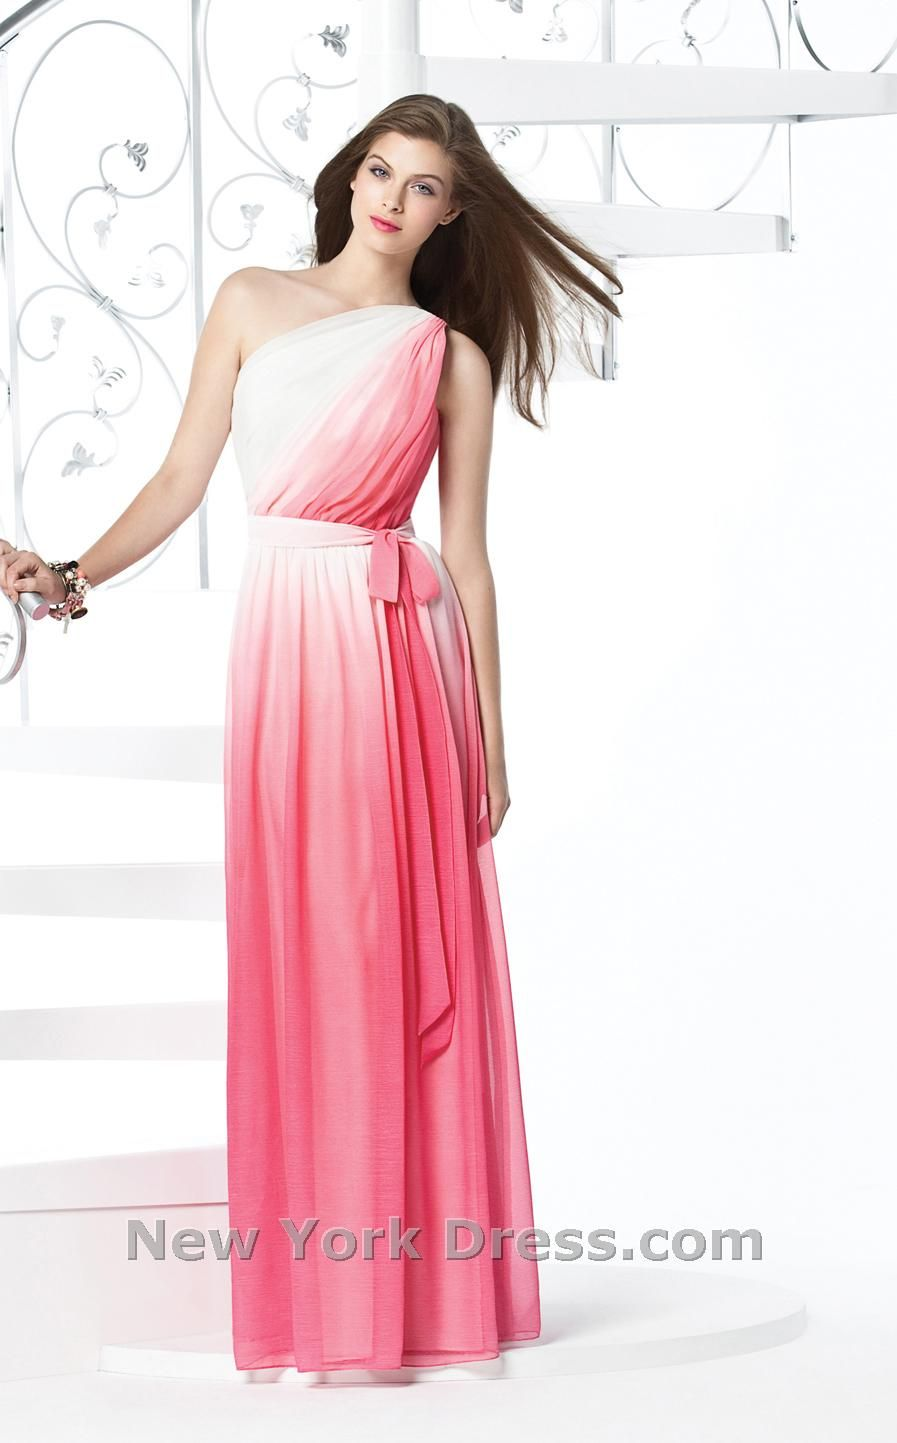 Dessy 2831 - $250.00 | When I get skinny clothes | Pinterest